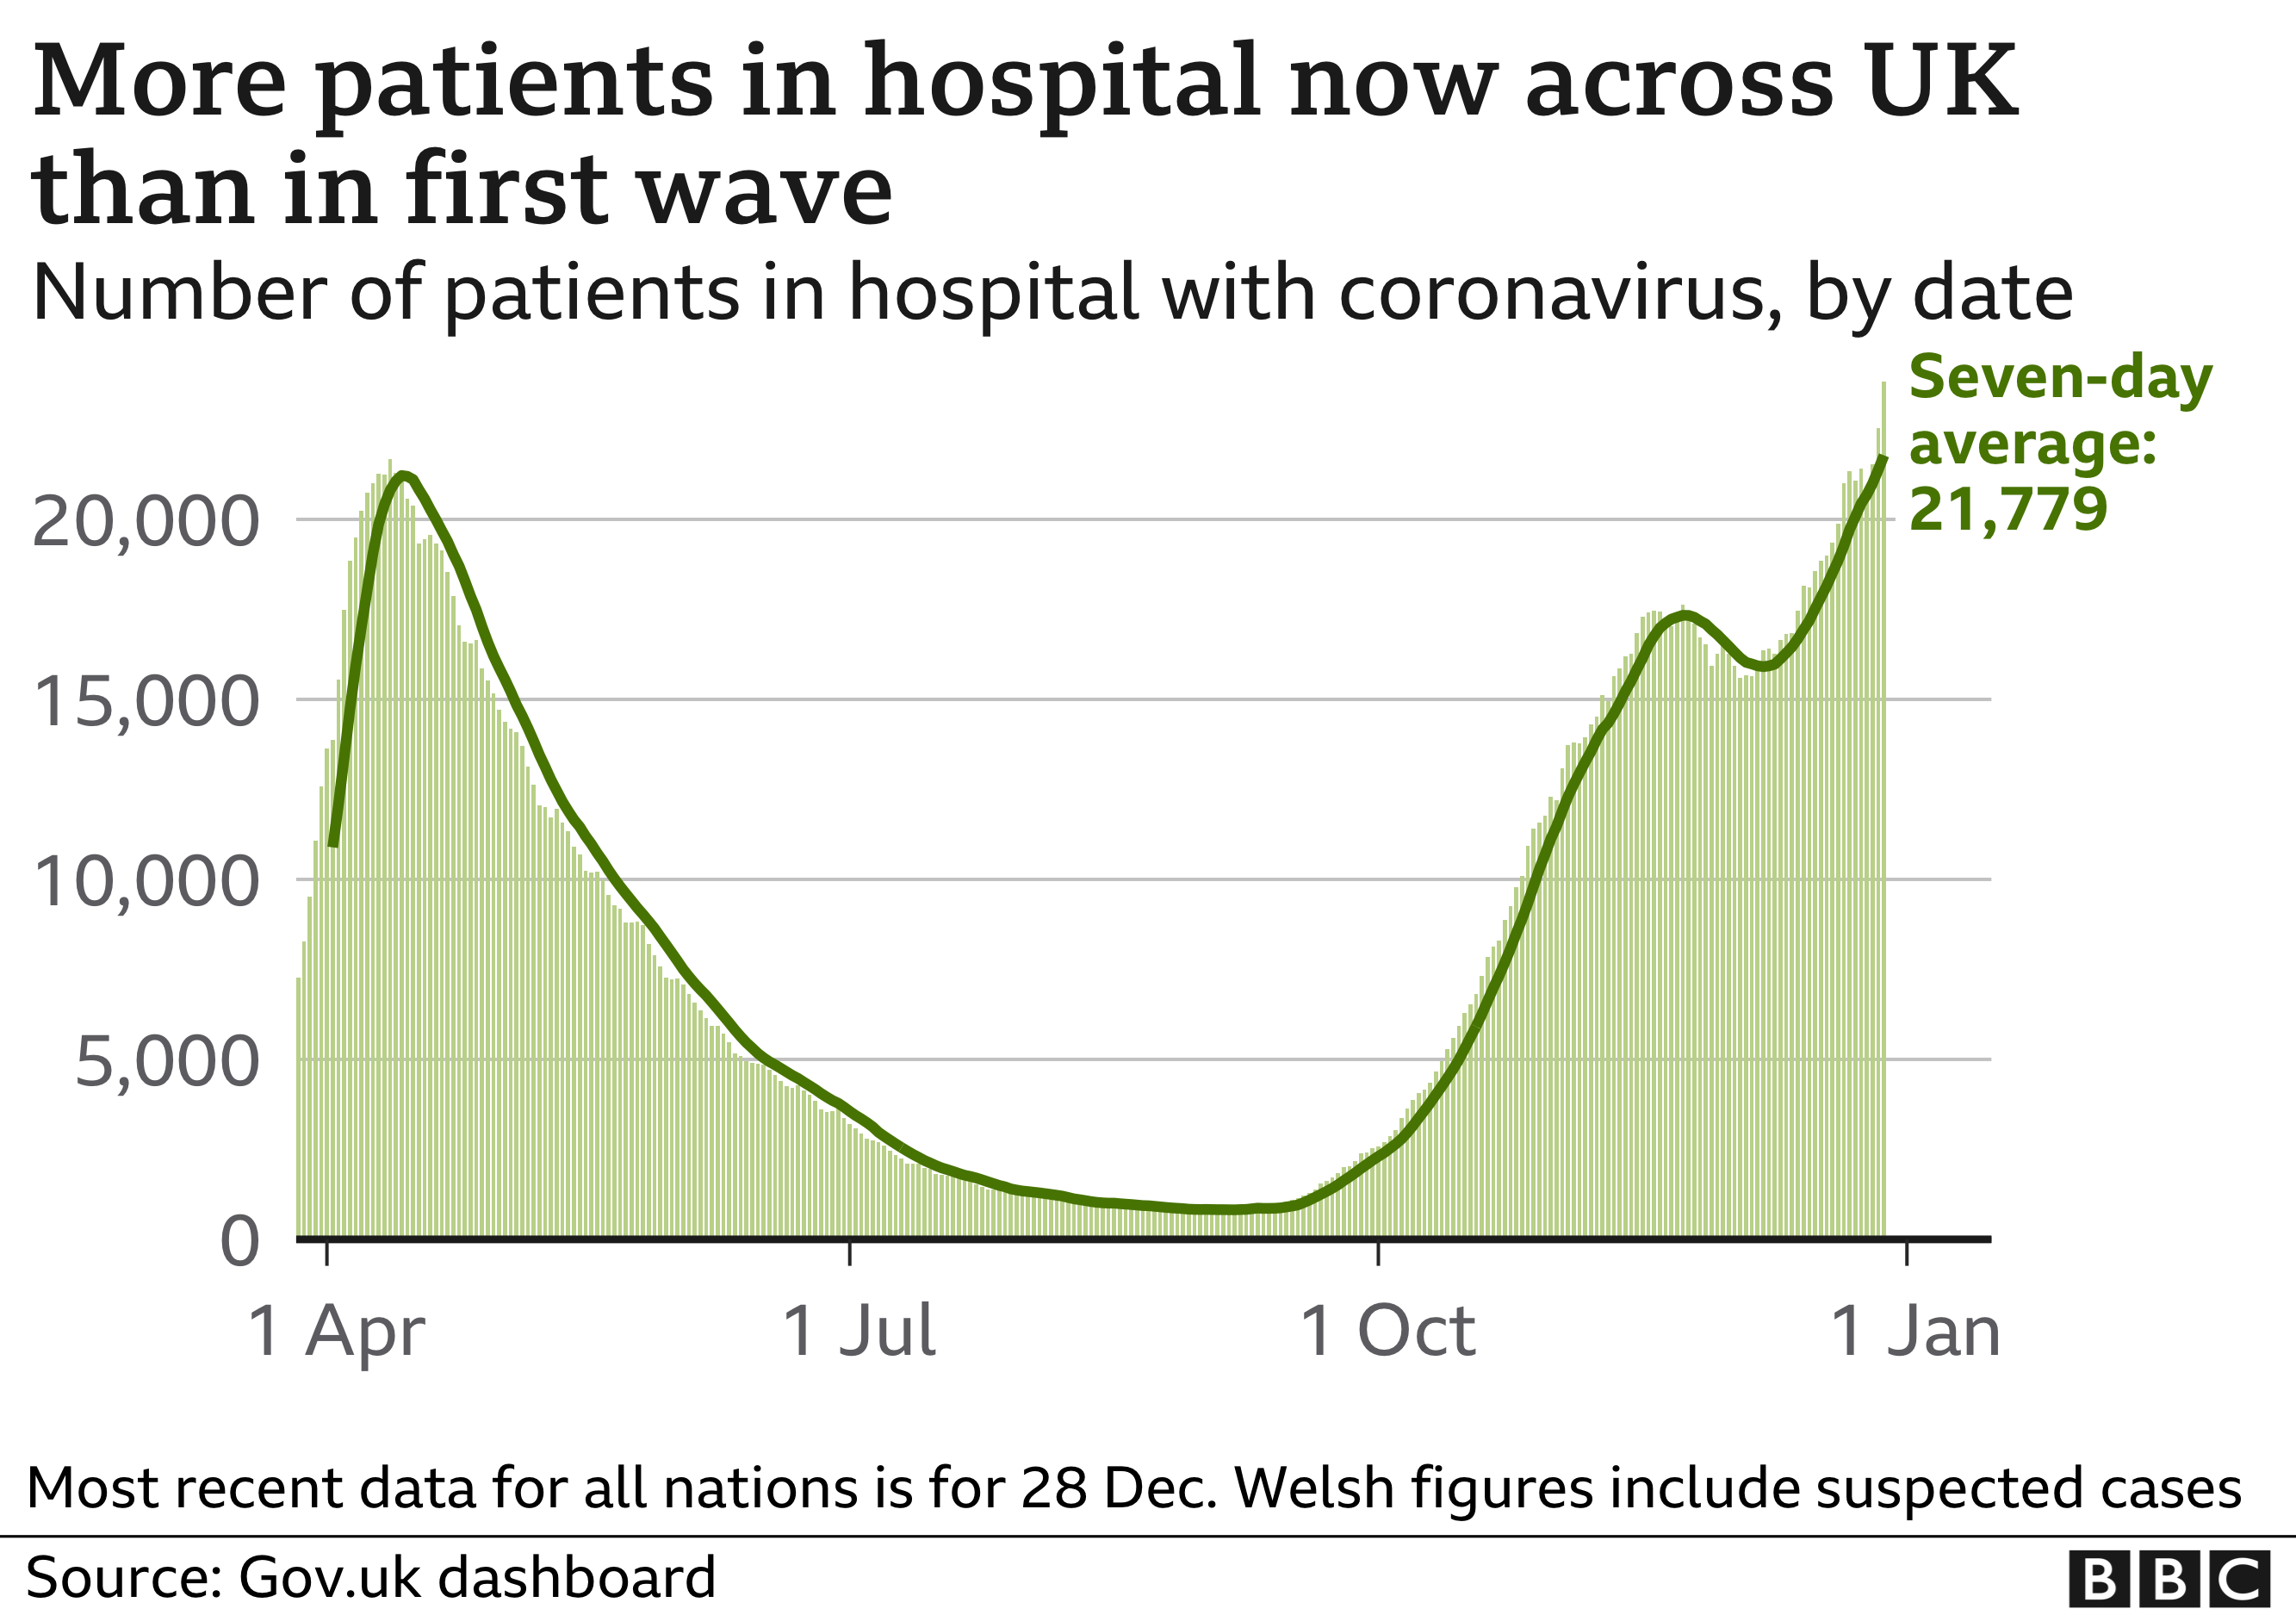 Hospitalisations in the UK as of 4 January (latest data)